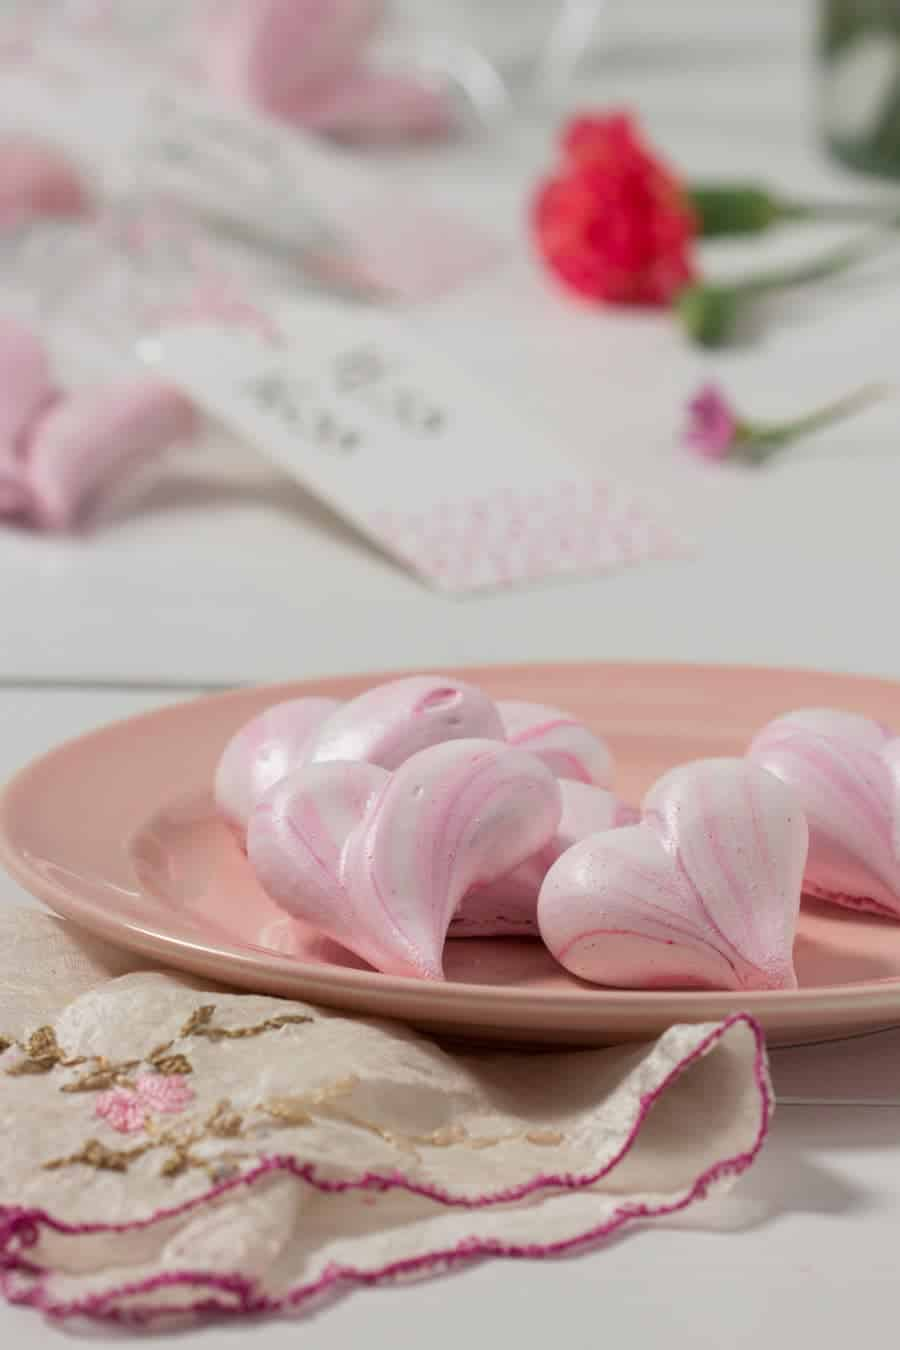 Easy Meringue Heart Cookies - Inspired by a 1967 recipe, these Meringue Heart Cookies are lovely Valentine's Day gifts for all of your loves!